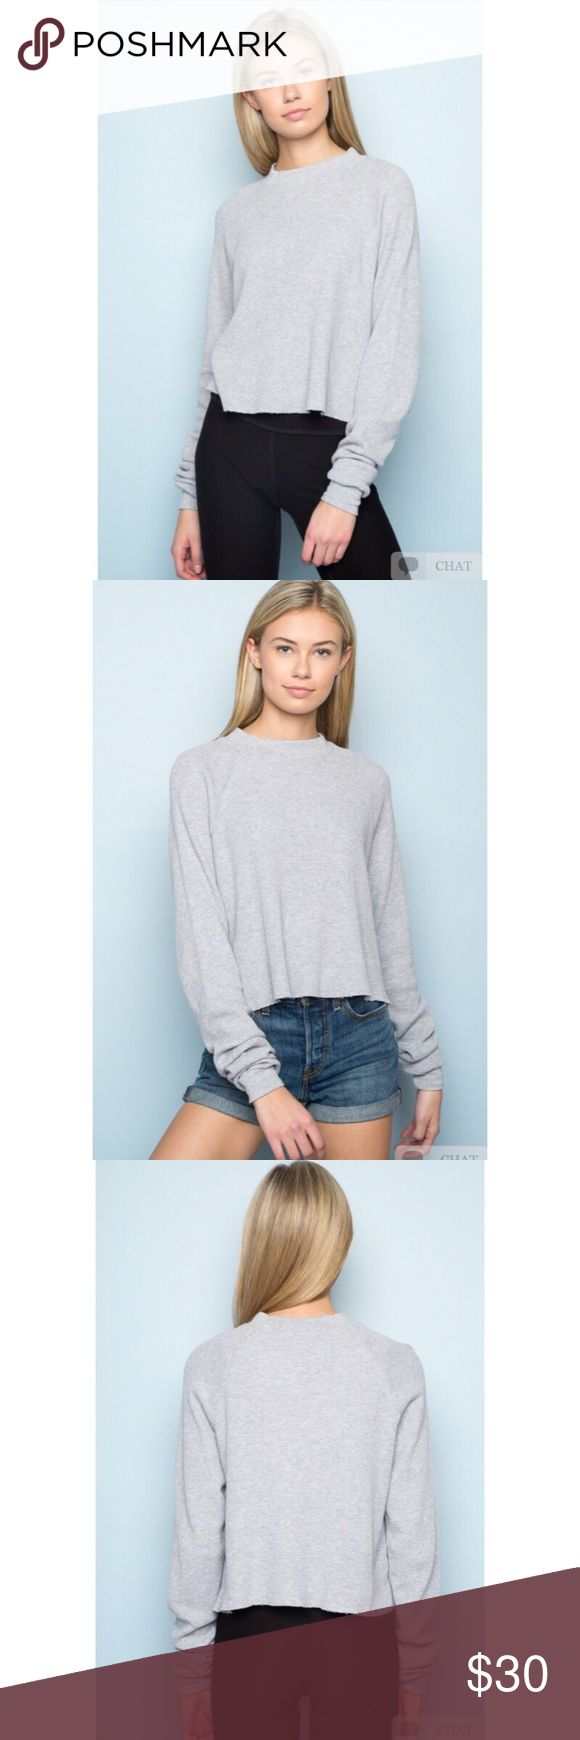 NEW! Brandy Melville Grey Thermal 💓 this is a brand new never been worn thermal from the brand Brandy Melville. The tags are still attached and can be purchased for full price online or in stores. I'm not accepting offers on this product, and I don't trades; however, I do offer a bundle discount. Cheers ✨ Happy Poshing! 💓 Brandy Melville Tops Tees - Long Sleeve